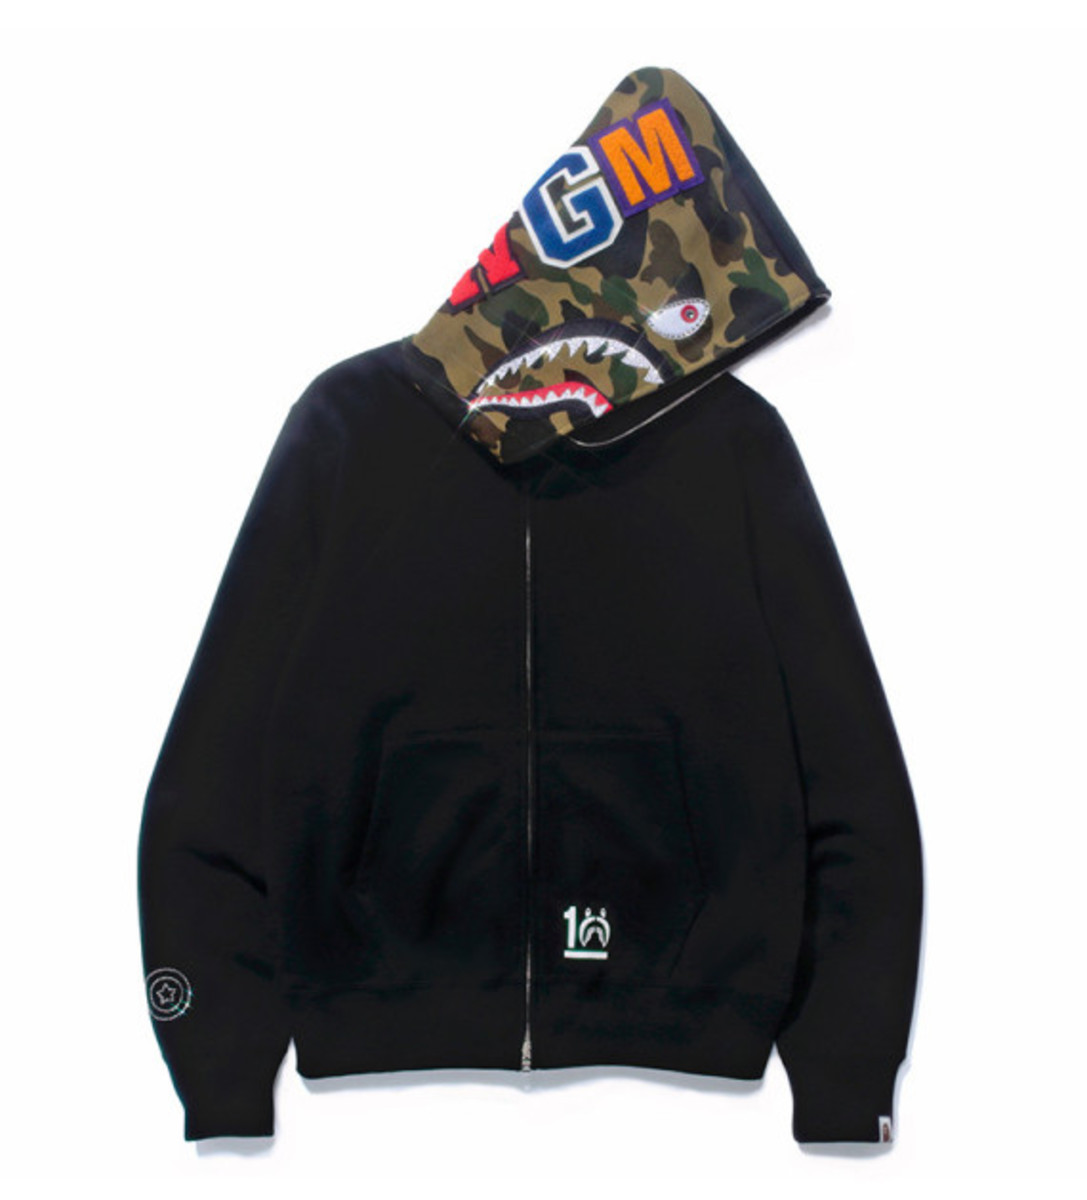 a-bathing-ape-shark-hoodie-10th-anniversary-collection-04